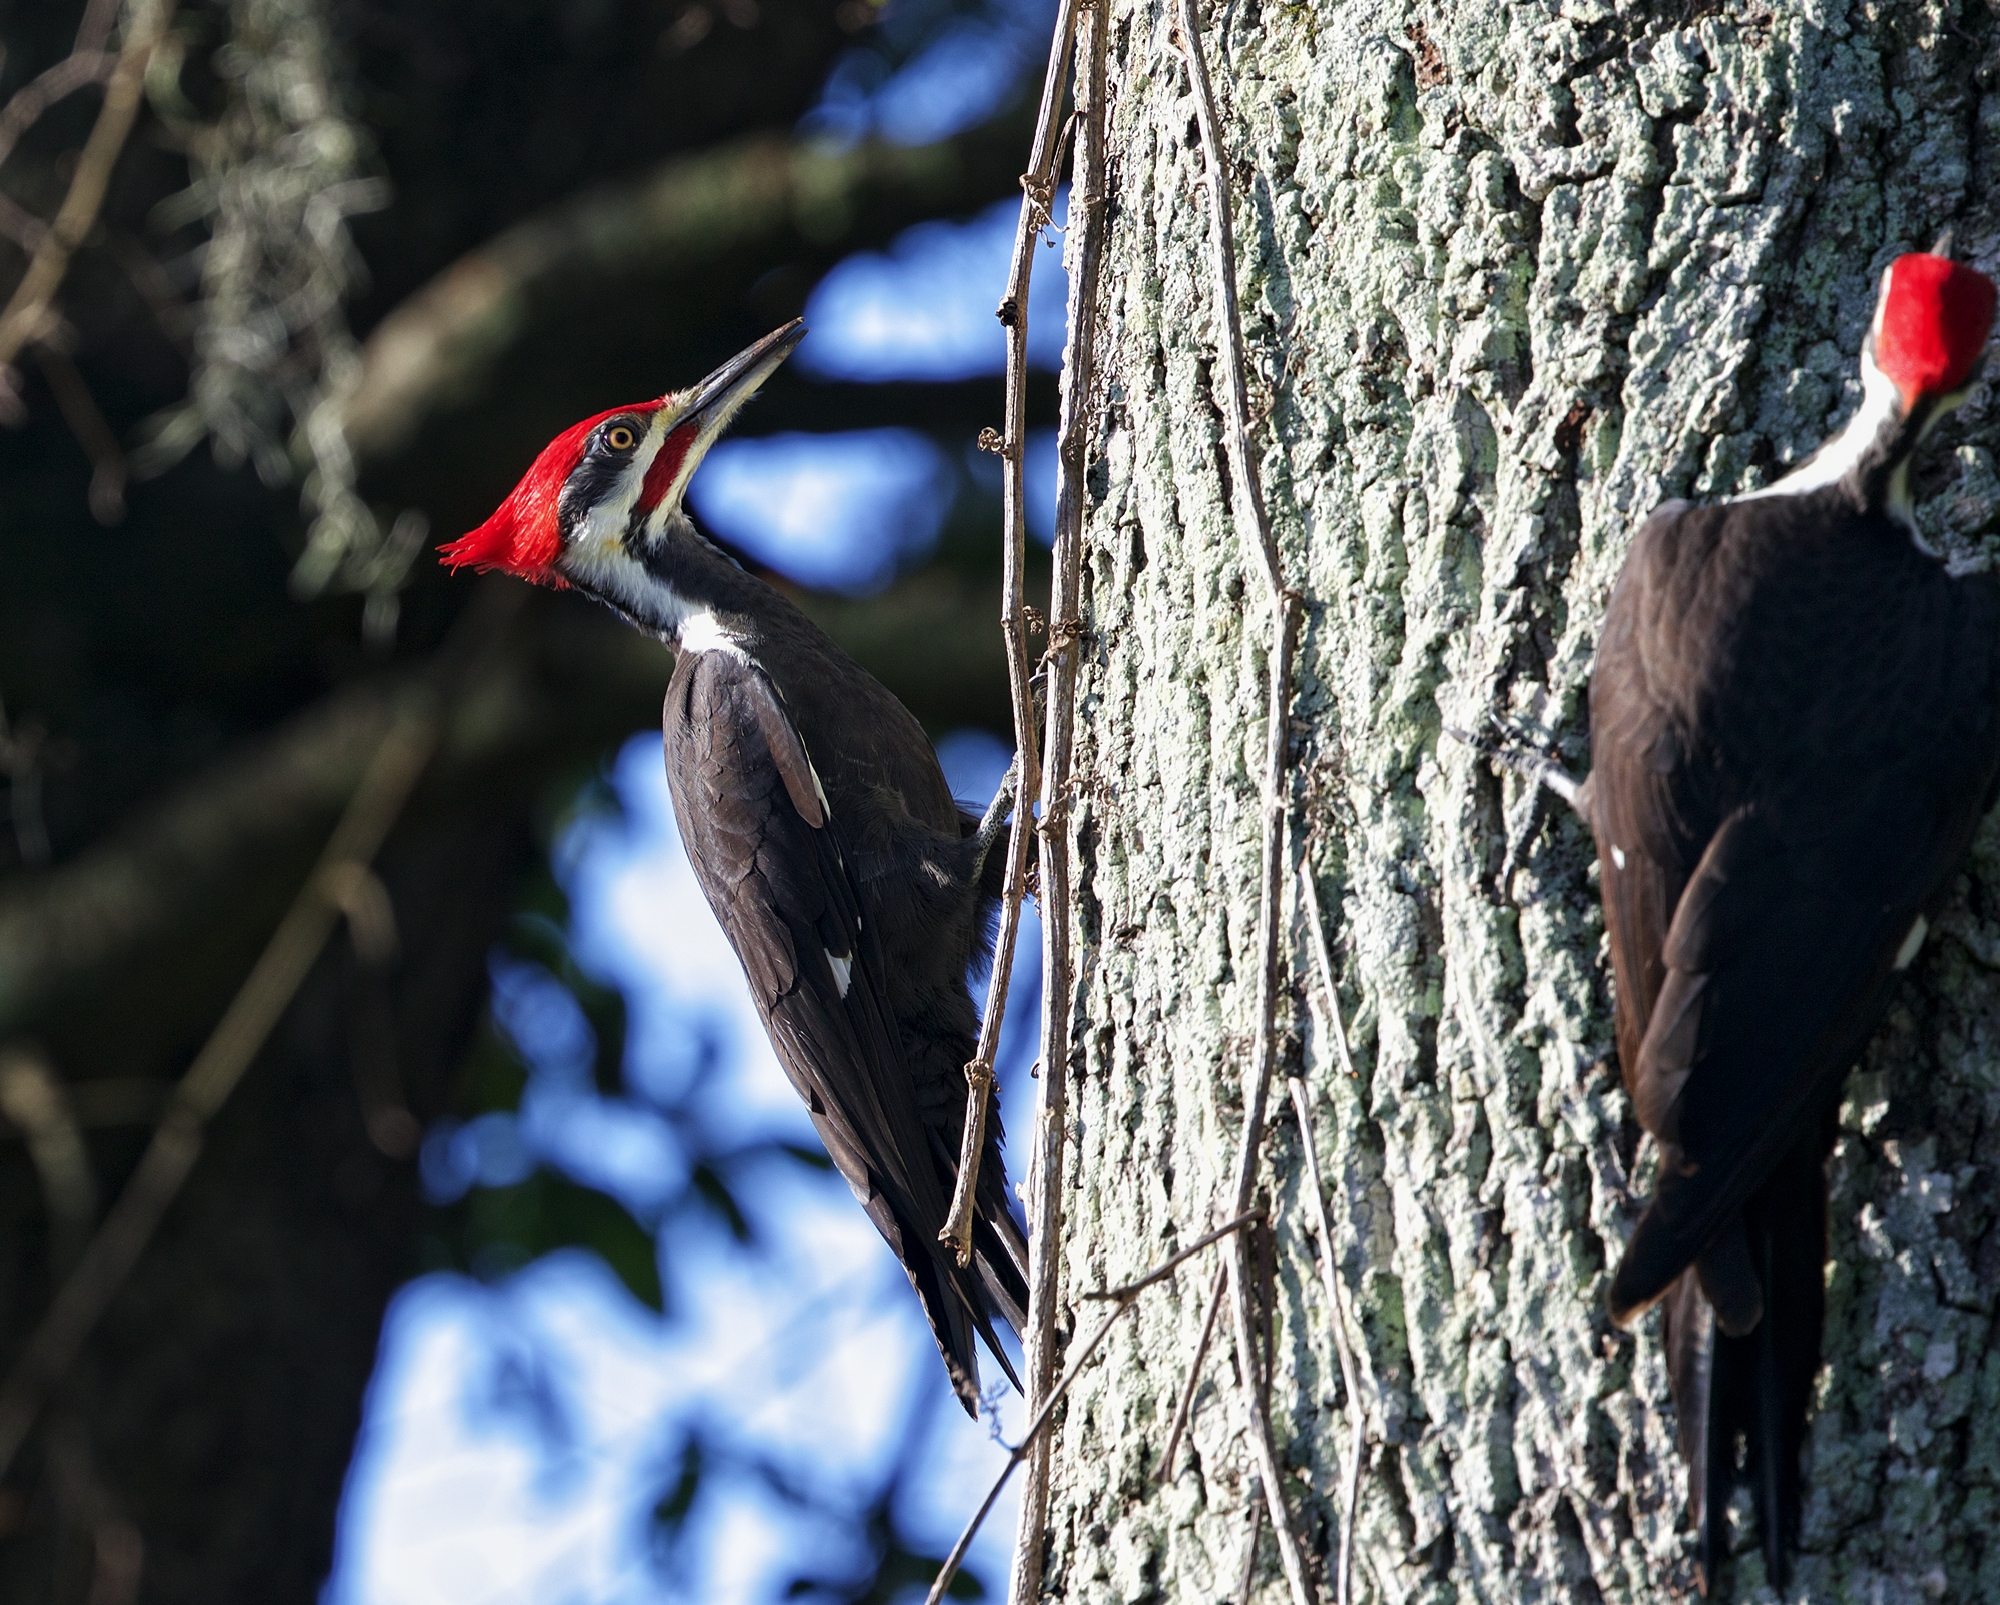 I will knock knock you if you don't get outta my tree said the Pileated Woodpecker to the other